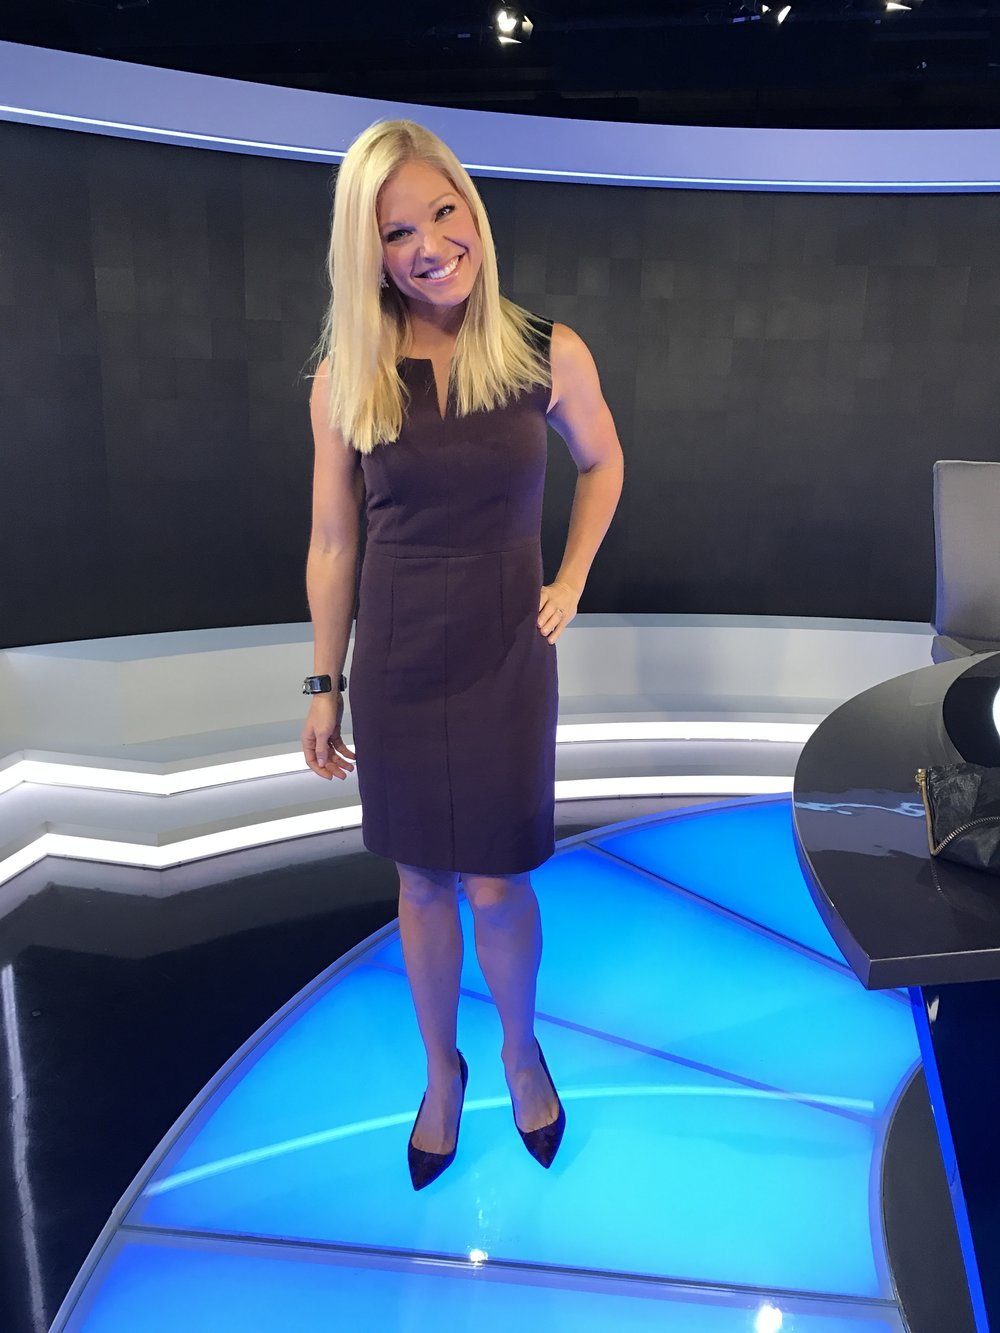 https://www.annakooiman.com/dress-to-impress/plum-dress-with-black-leather-accents